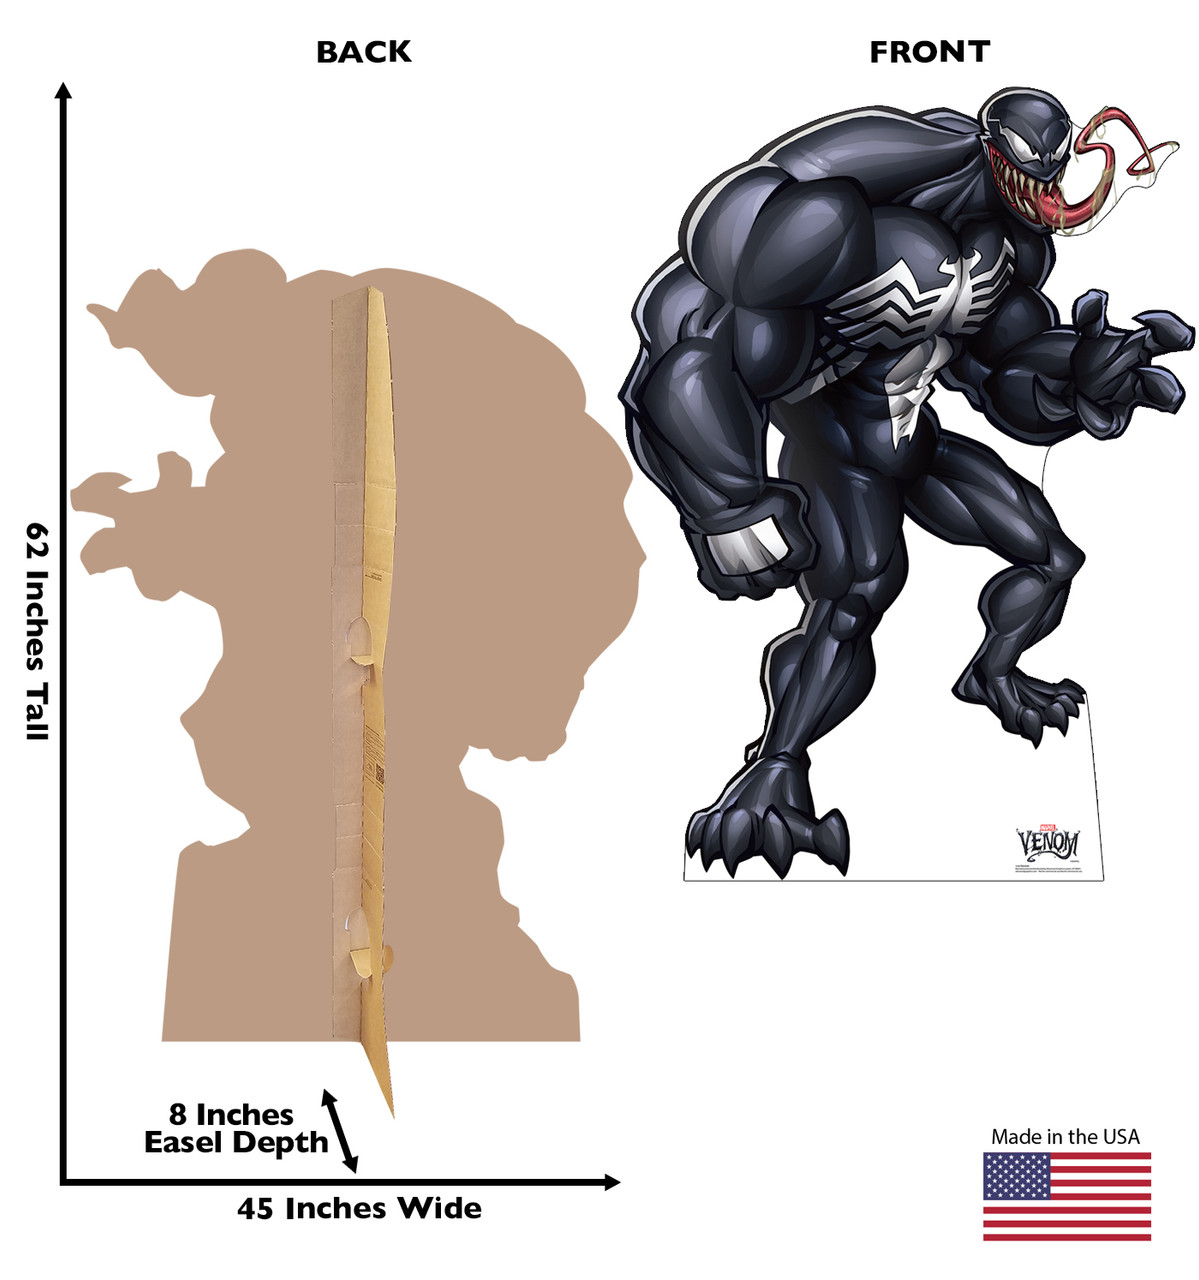 Life-size cardboard standee of Venom from Marvel Classics with back and front dimensions.